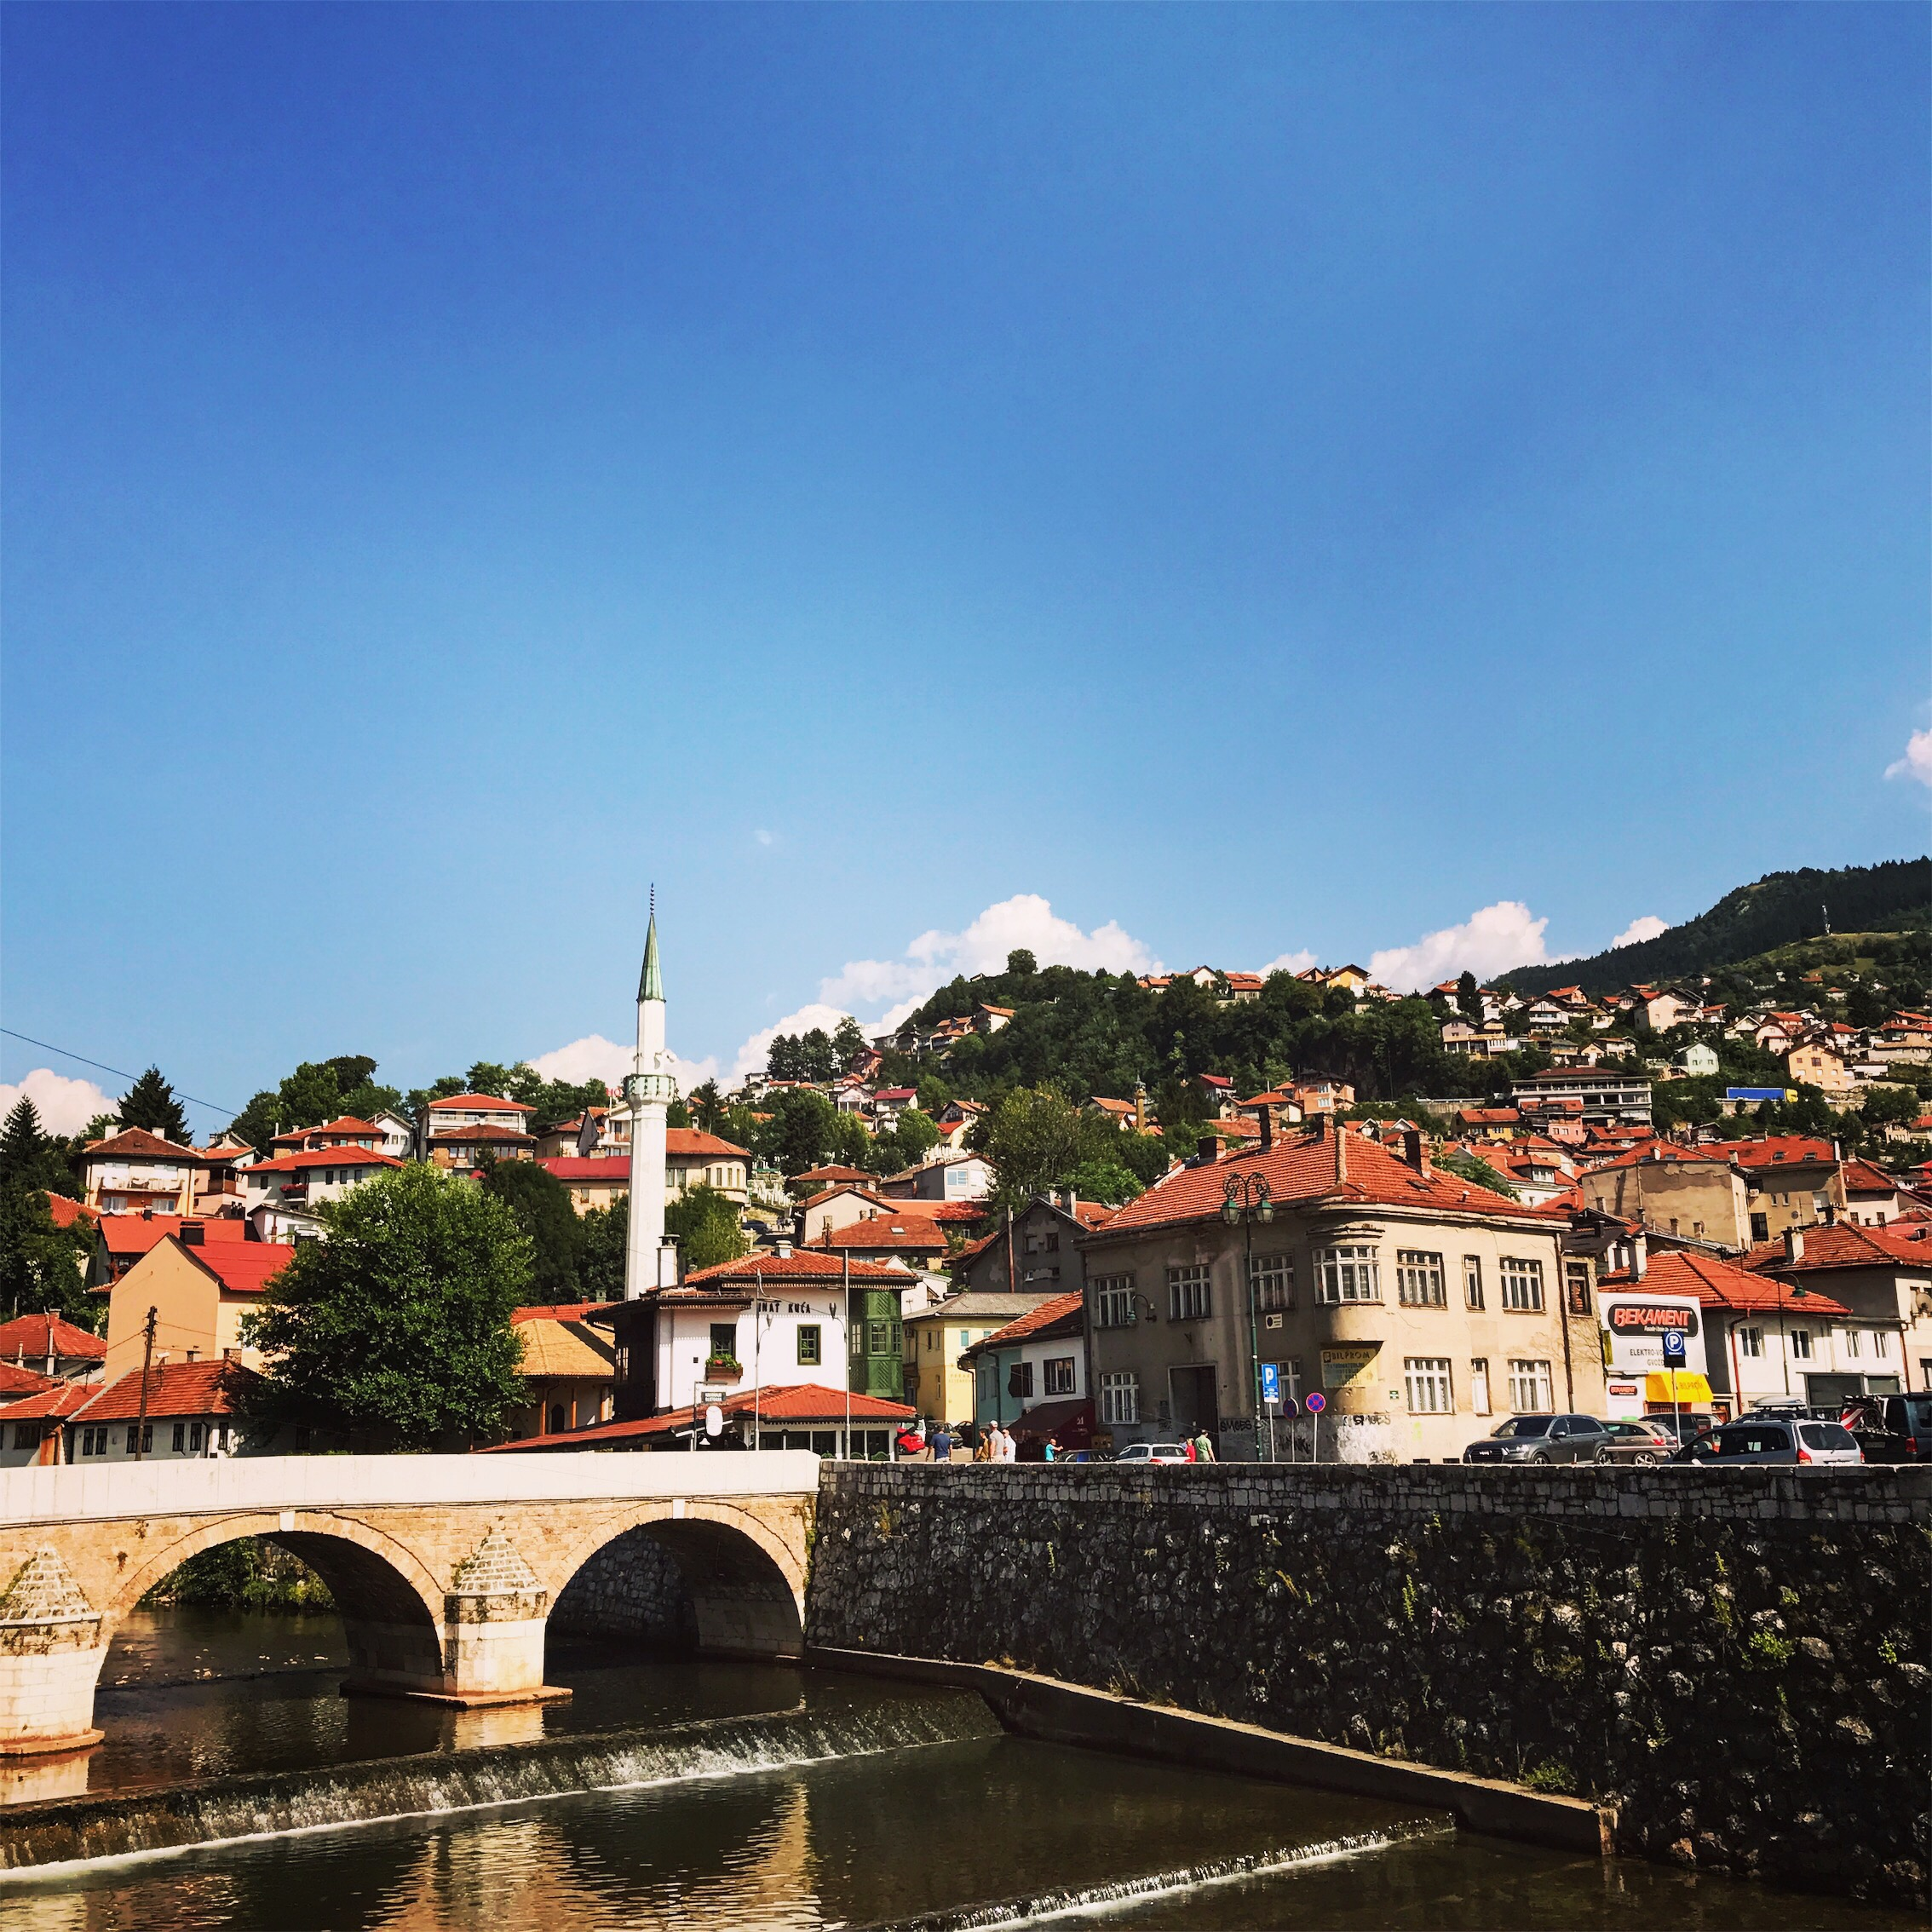 Picturesque Sarajevo. Behind me (not pictured) is the Latin Bridge, built by the Ottomans in the 1500s. More significantly, it's next to where Bosnian-Serb Gavrilo Princip, who was part of a group plotting to end  Austro-Hungarian  rule, assassinated heir Archduke Franz Ferdinand, igniting World War I.